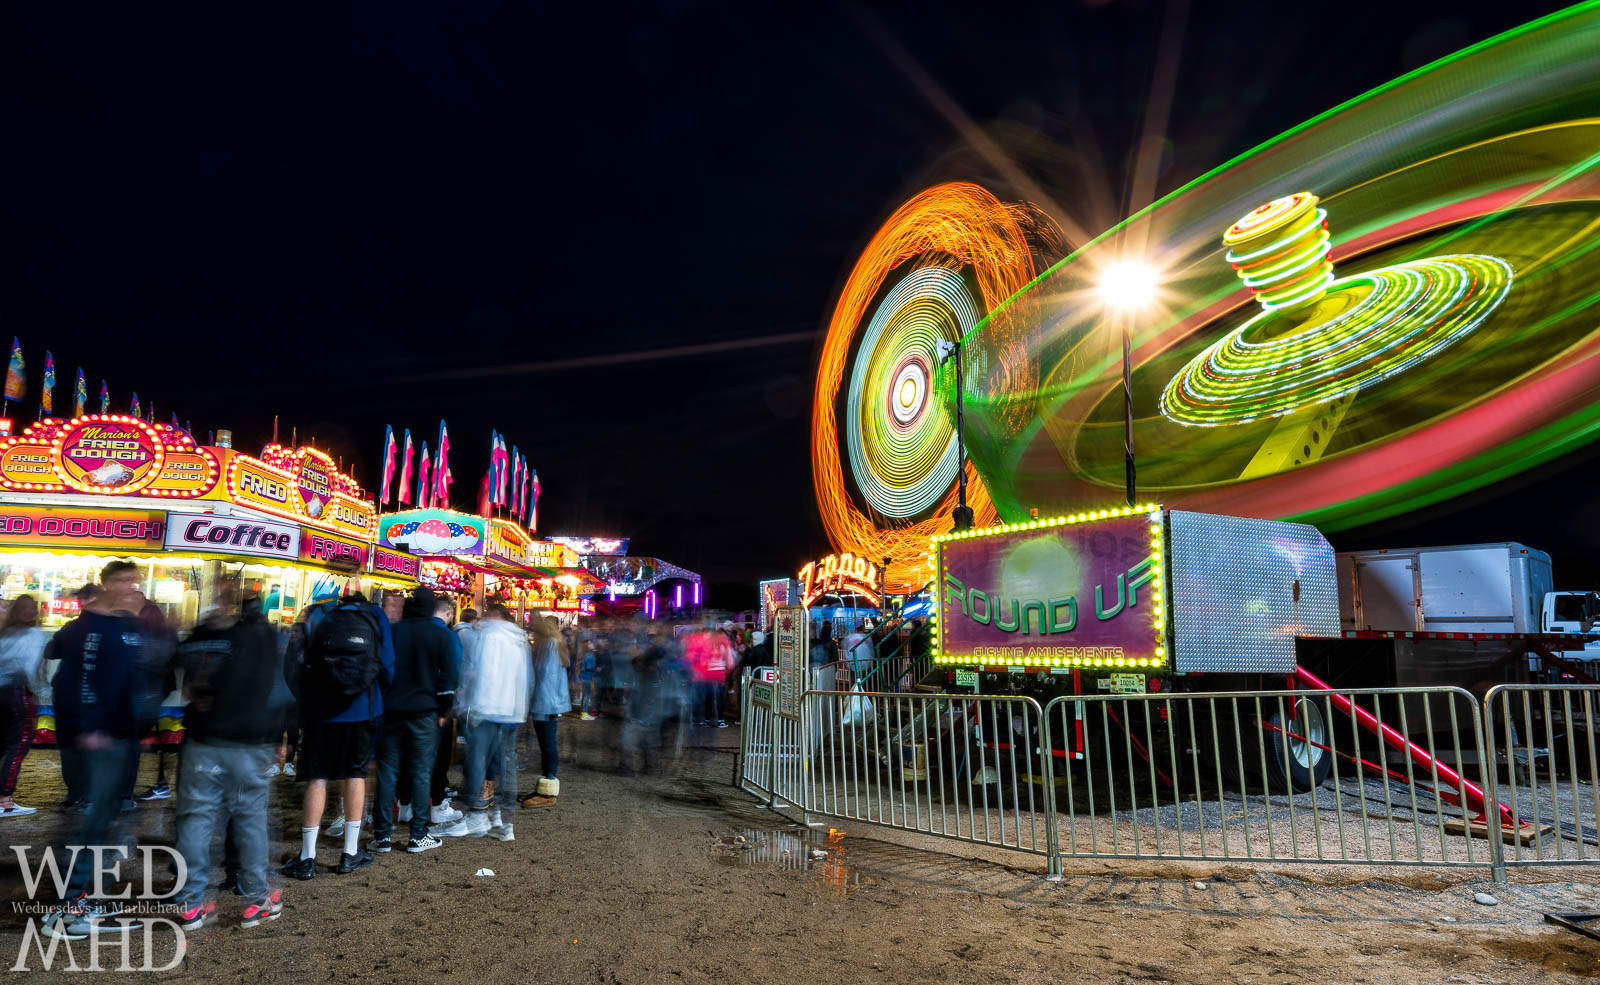 A long exposure image of the Marblehead Carnival creates spinning neon for the Round Up and Zipper rides and ghosts of the teenagers walking along the sand